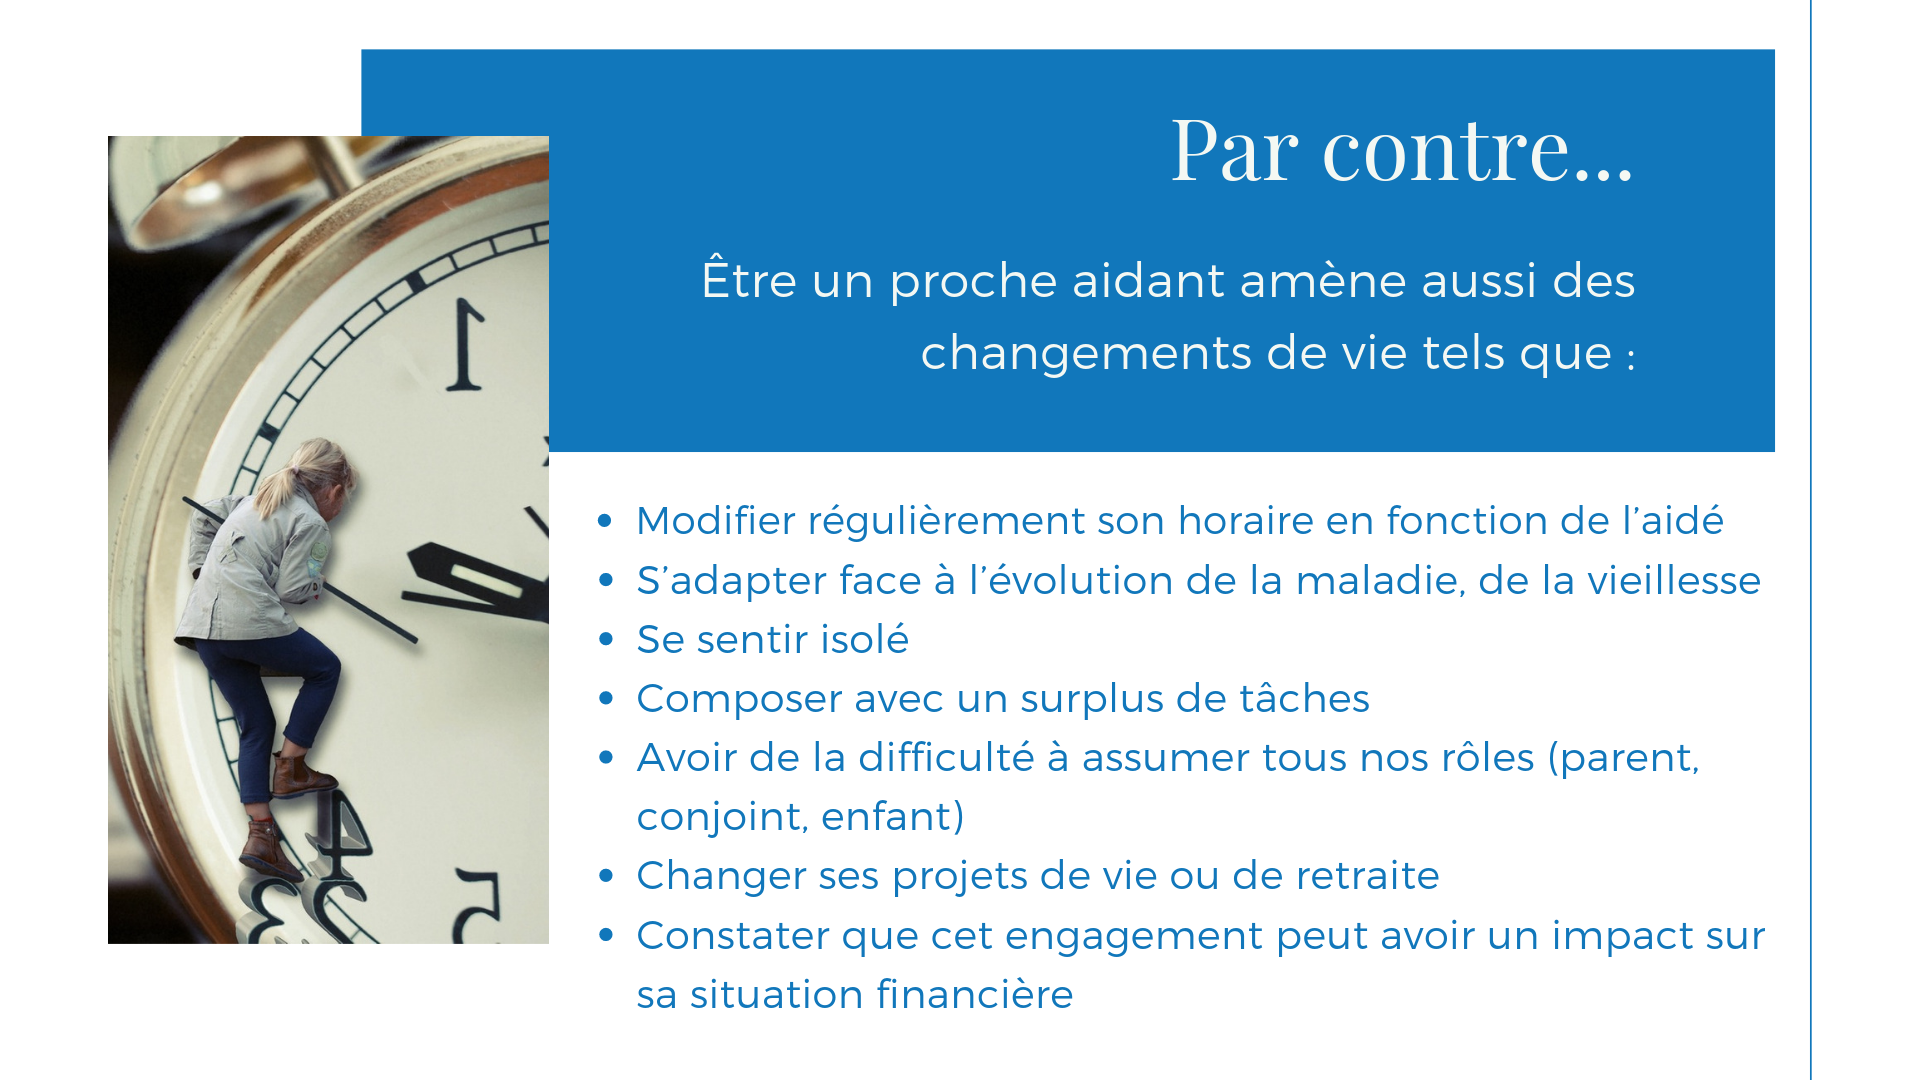 35 proches aidnats changement projets horaire aide maladie viellesse